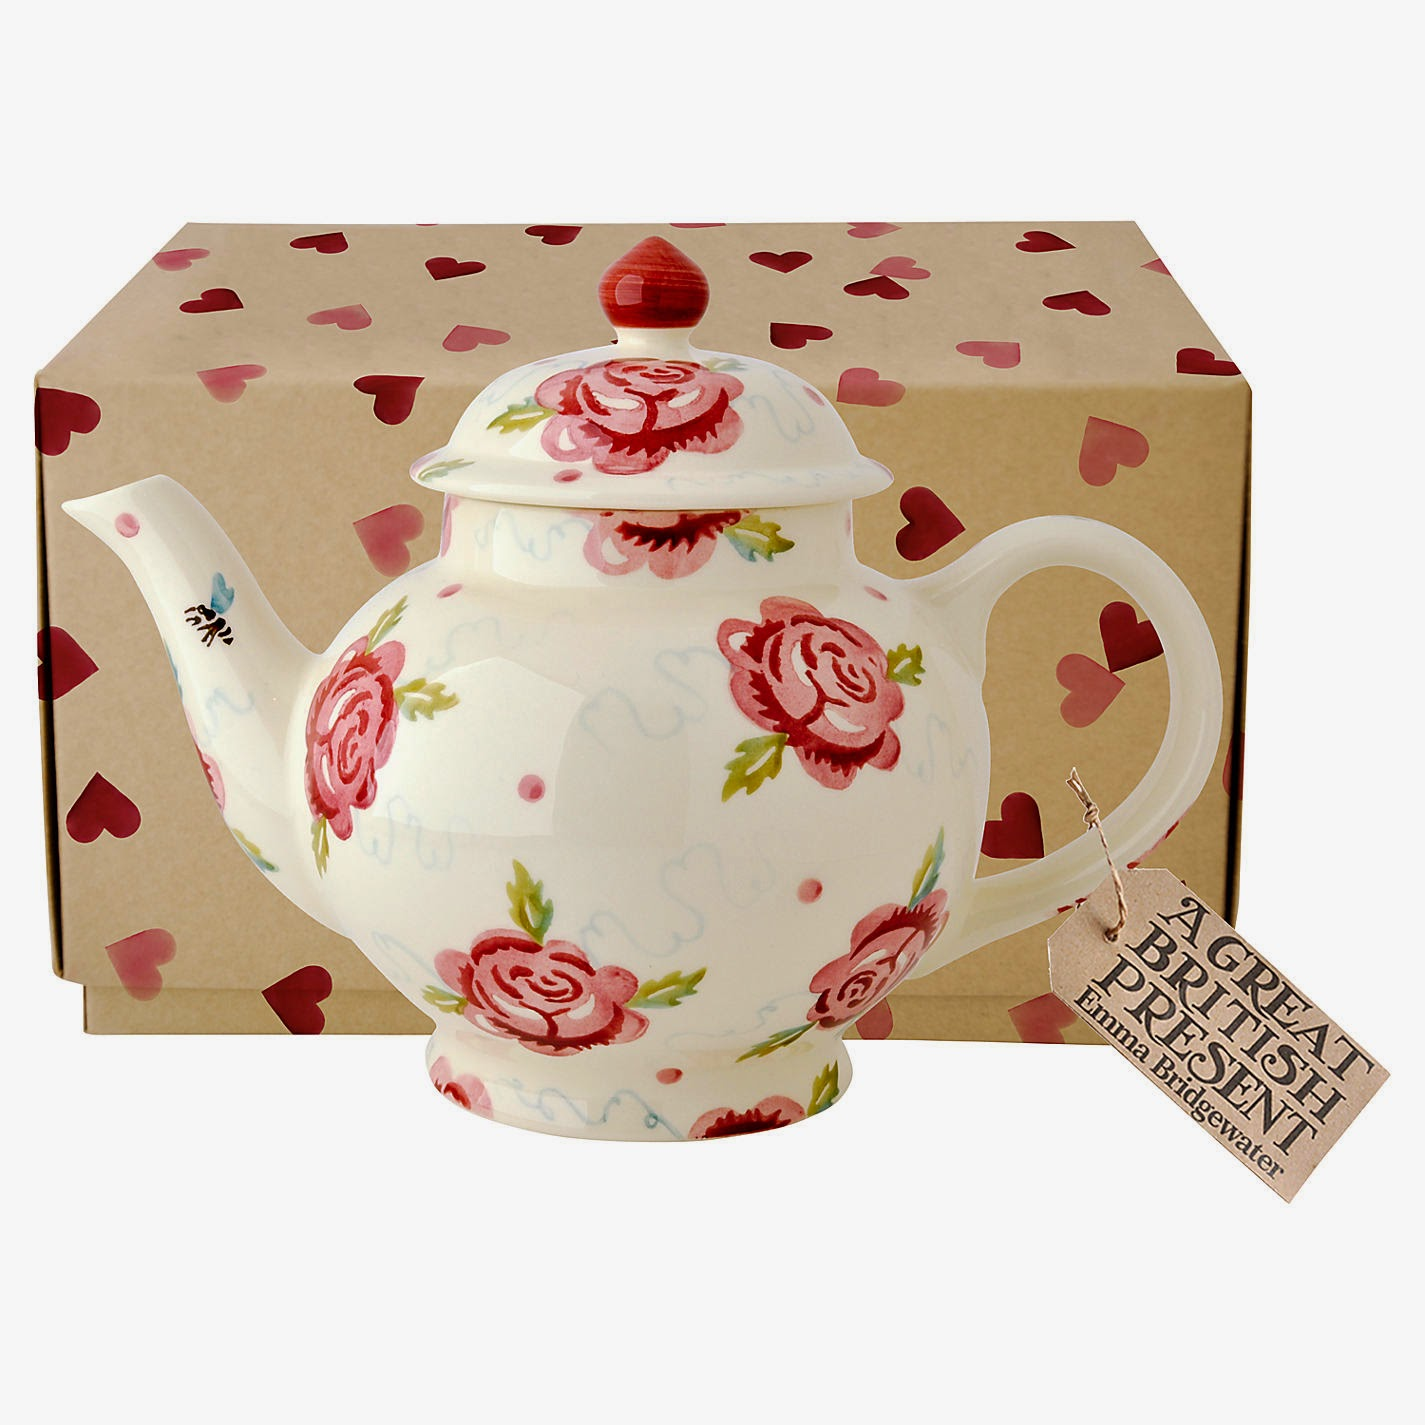 Keep Calm and Collect Emma Bridgewater